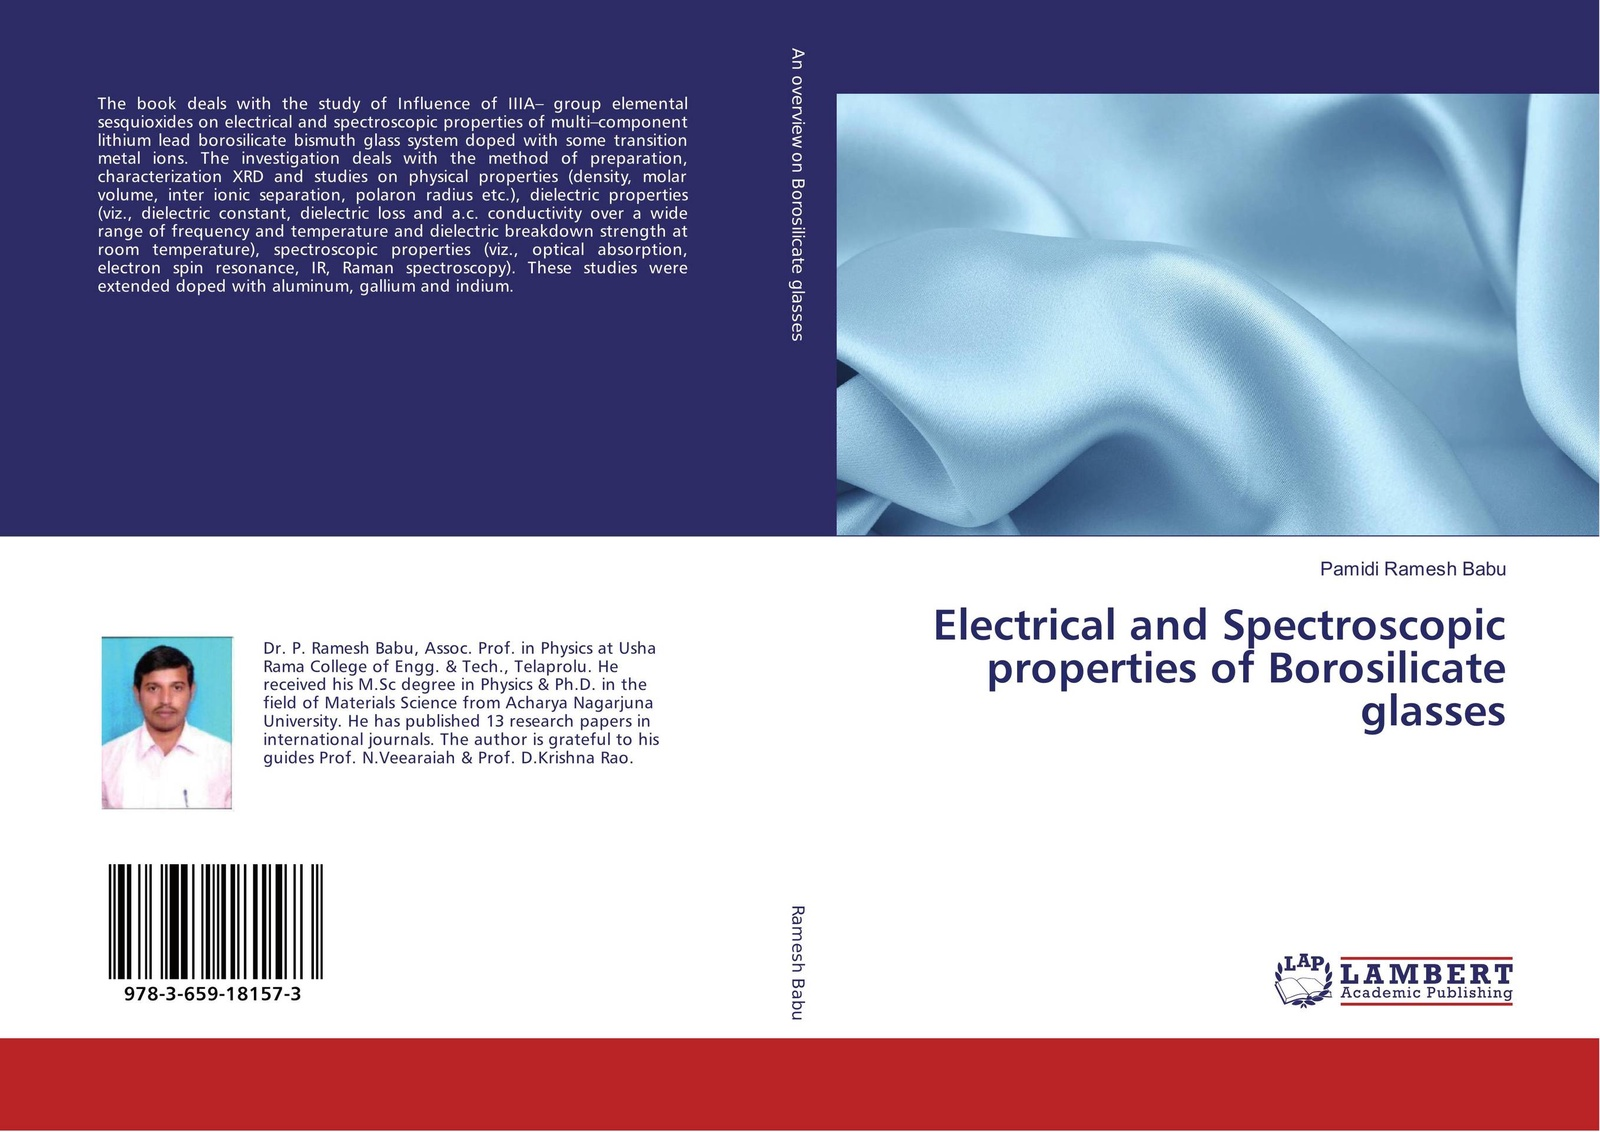 Pamidi Ramesh Babu Electrical and Spectroscopic properties of Borosilicate glasses magnetic and dielectric properties of materials